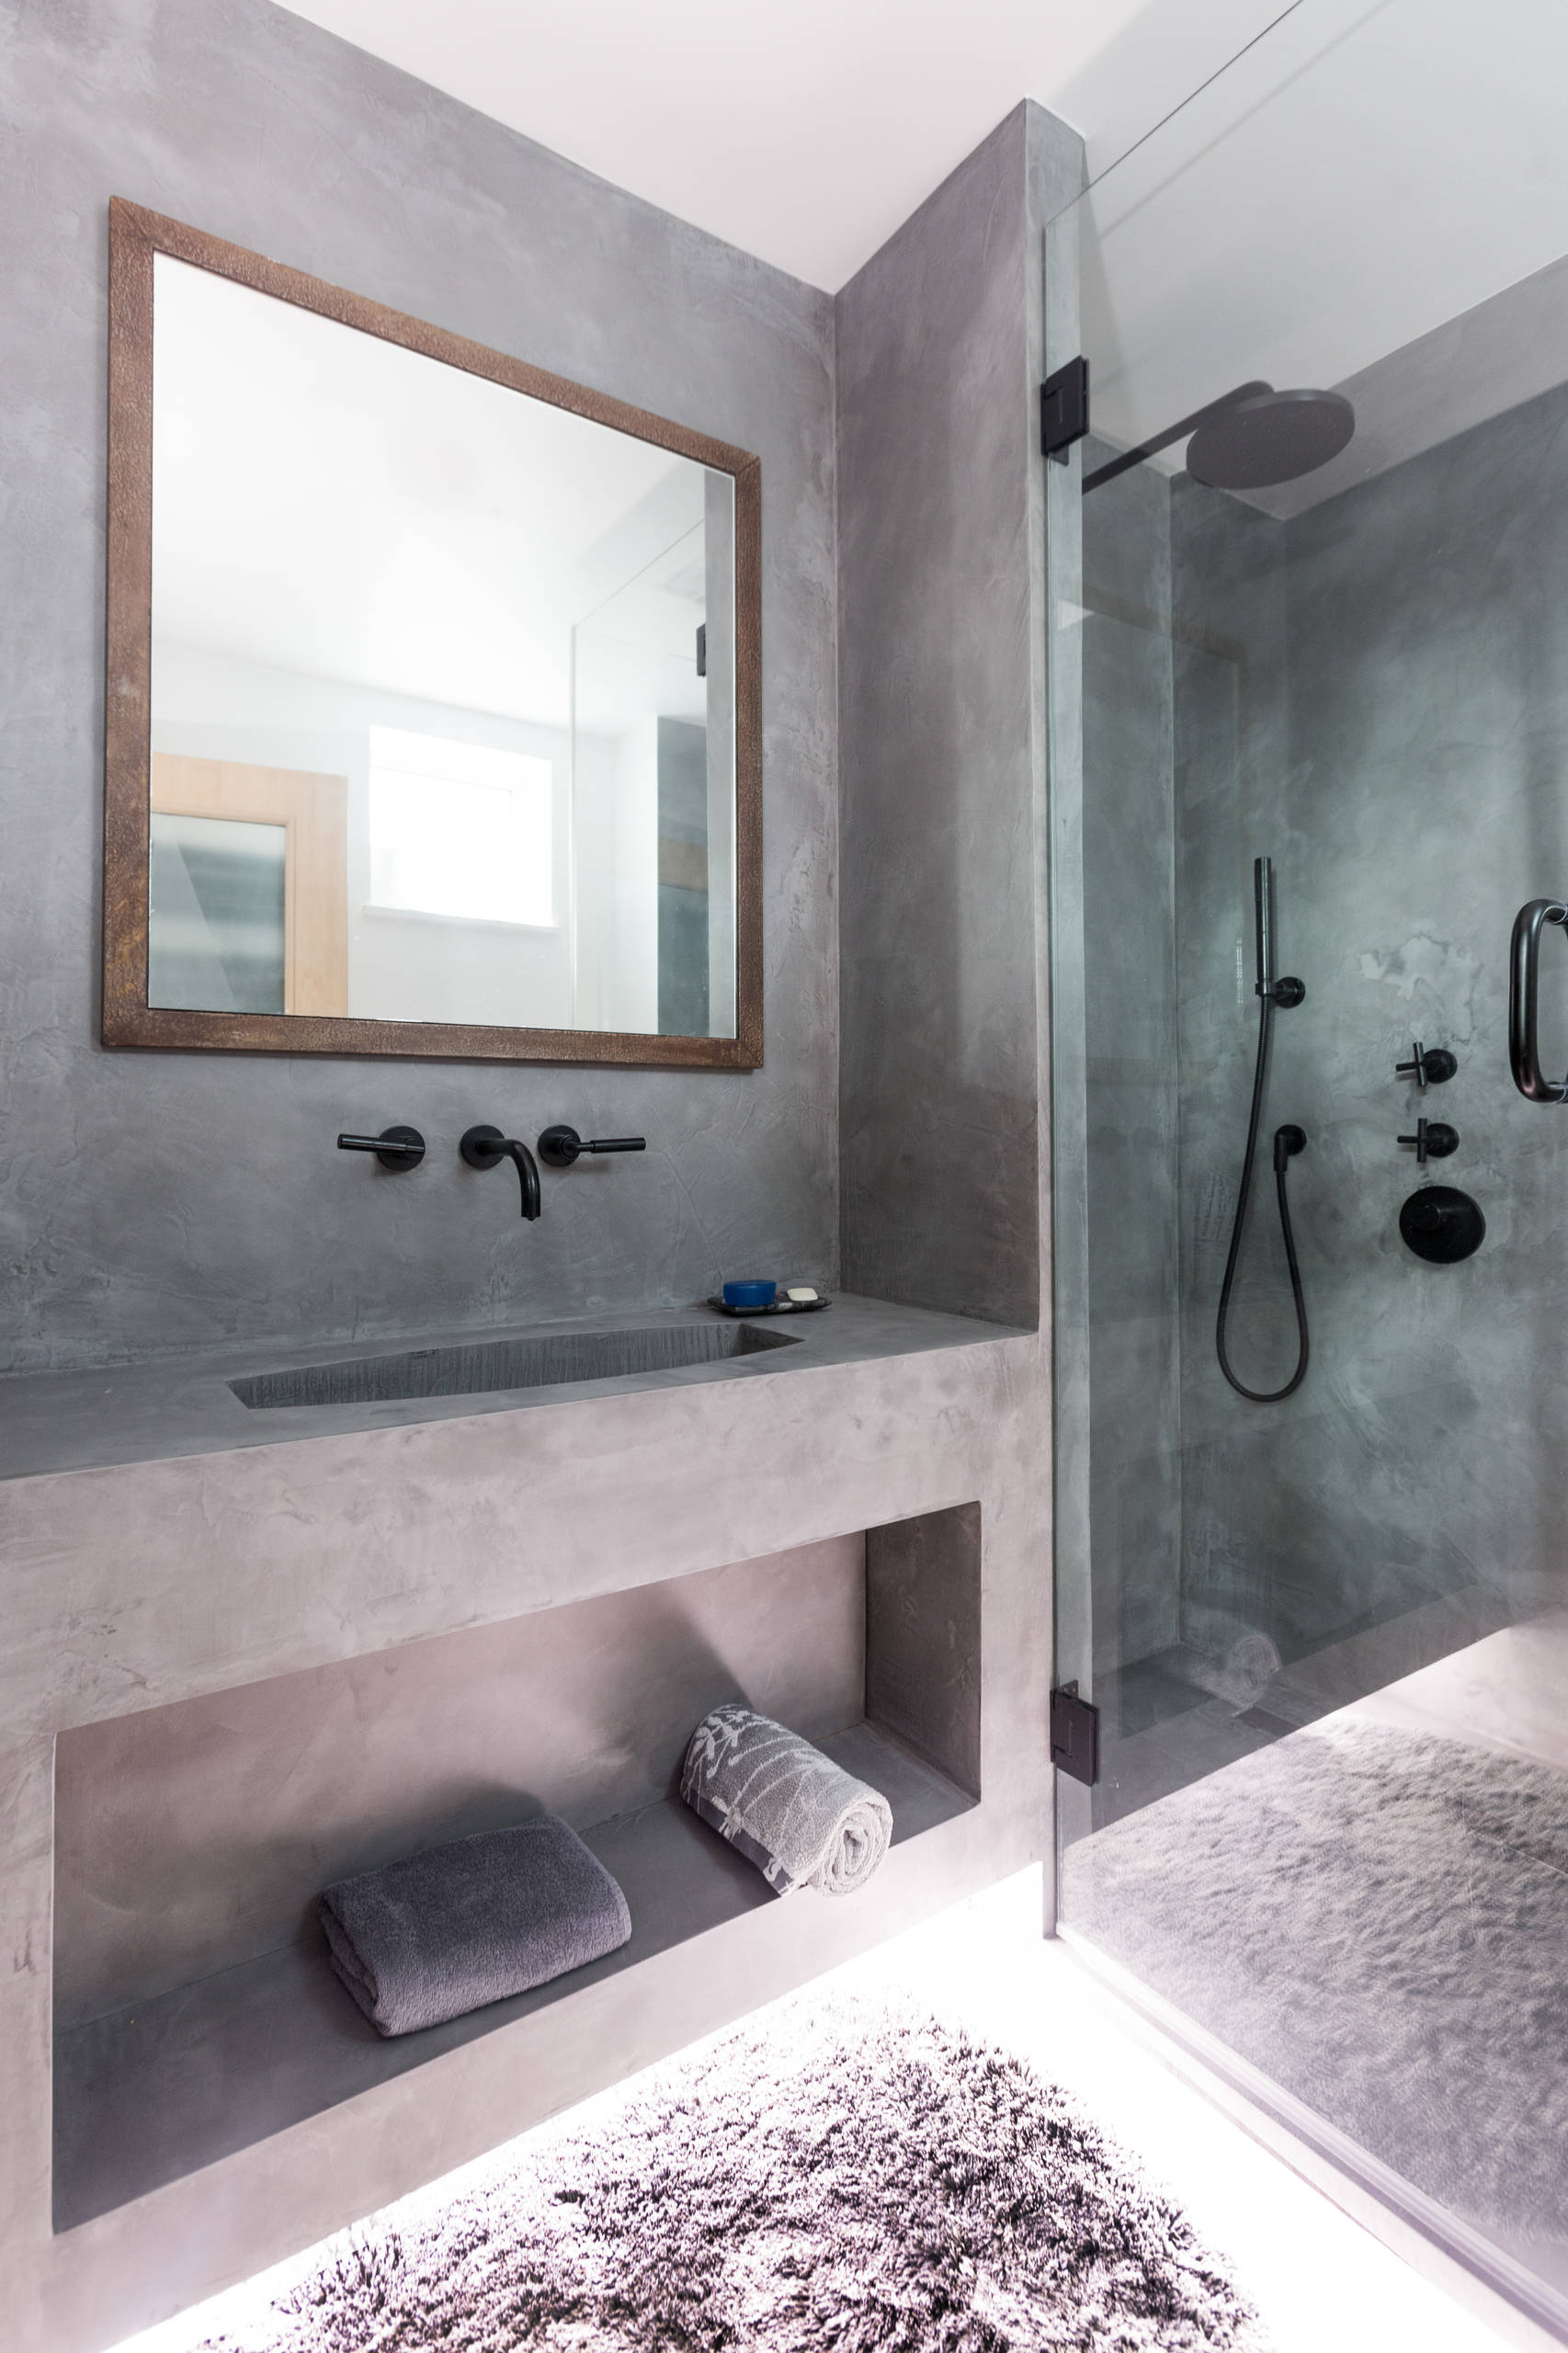 75 Beautiful Concrete Floor Bathroom Pictures Ideas March 2021 Houzz